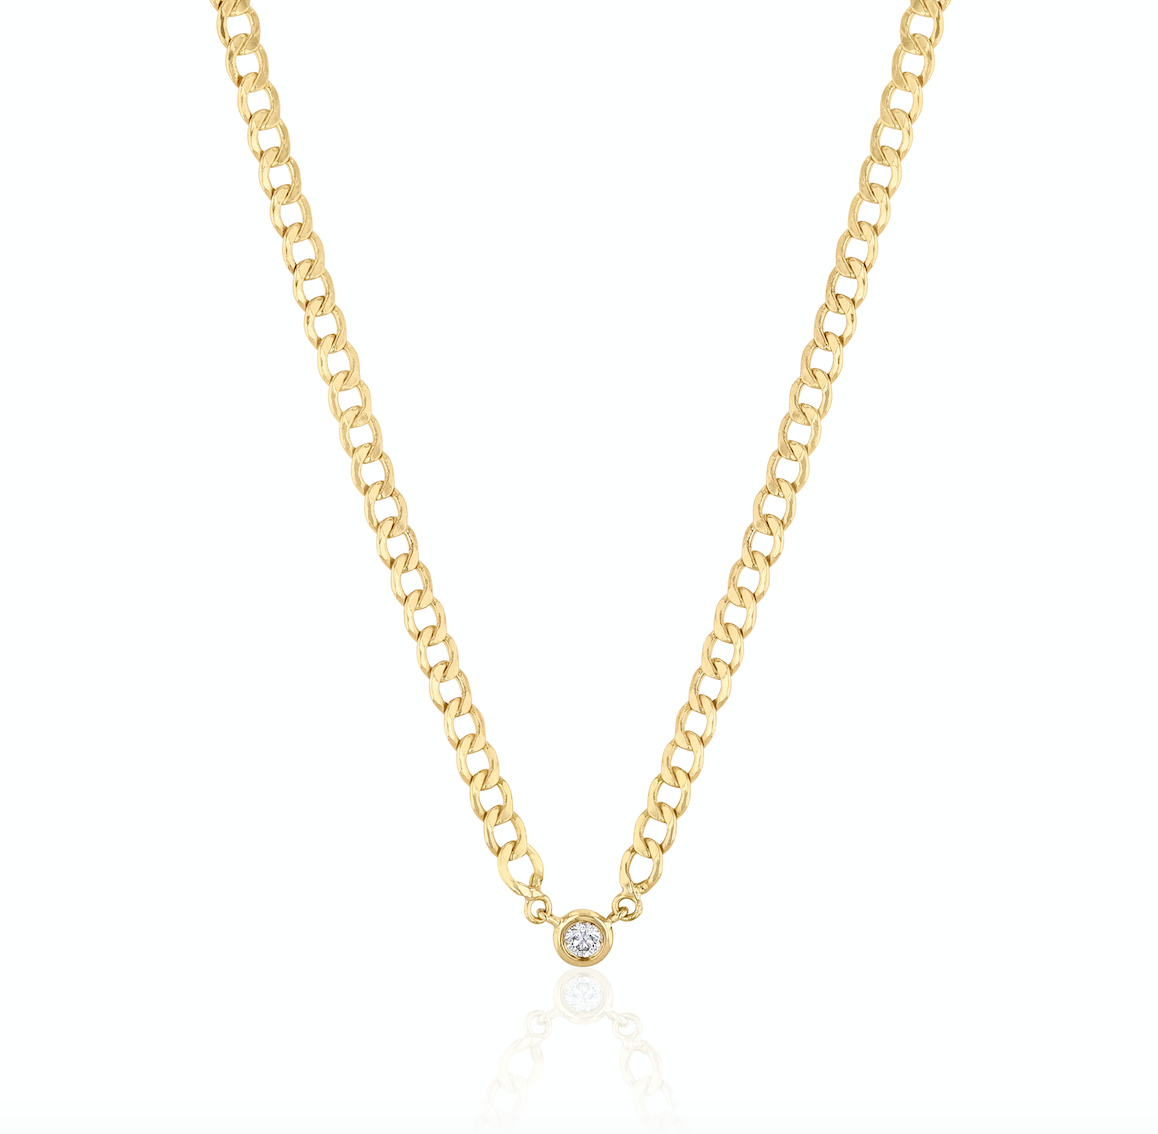 Sparkled Thin Chain Reaction Necklace